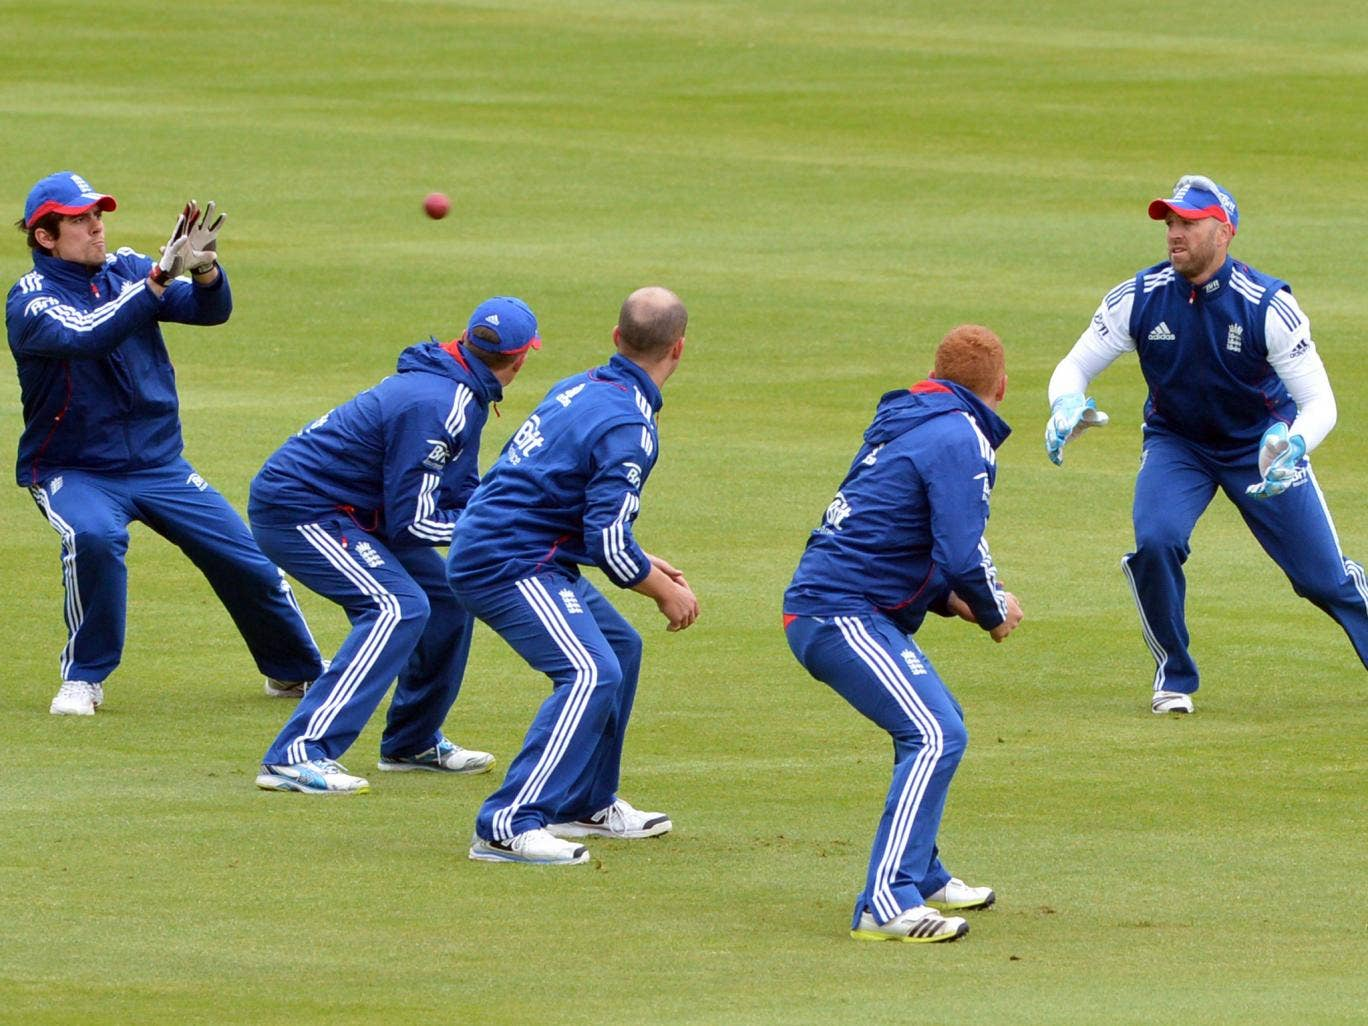 Alastair Cook takes a catch during a training session at Lord's yesterday